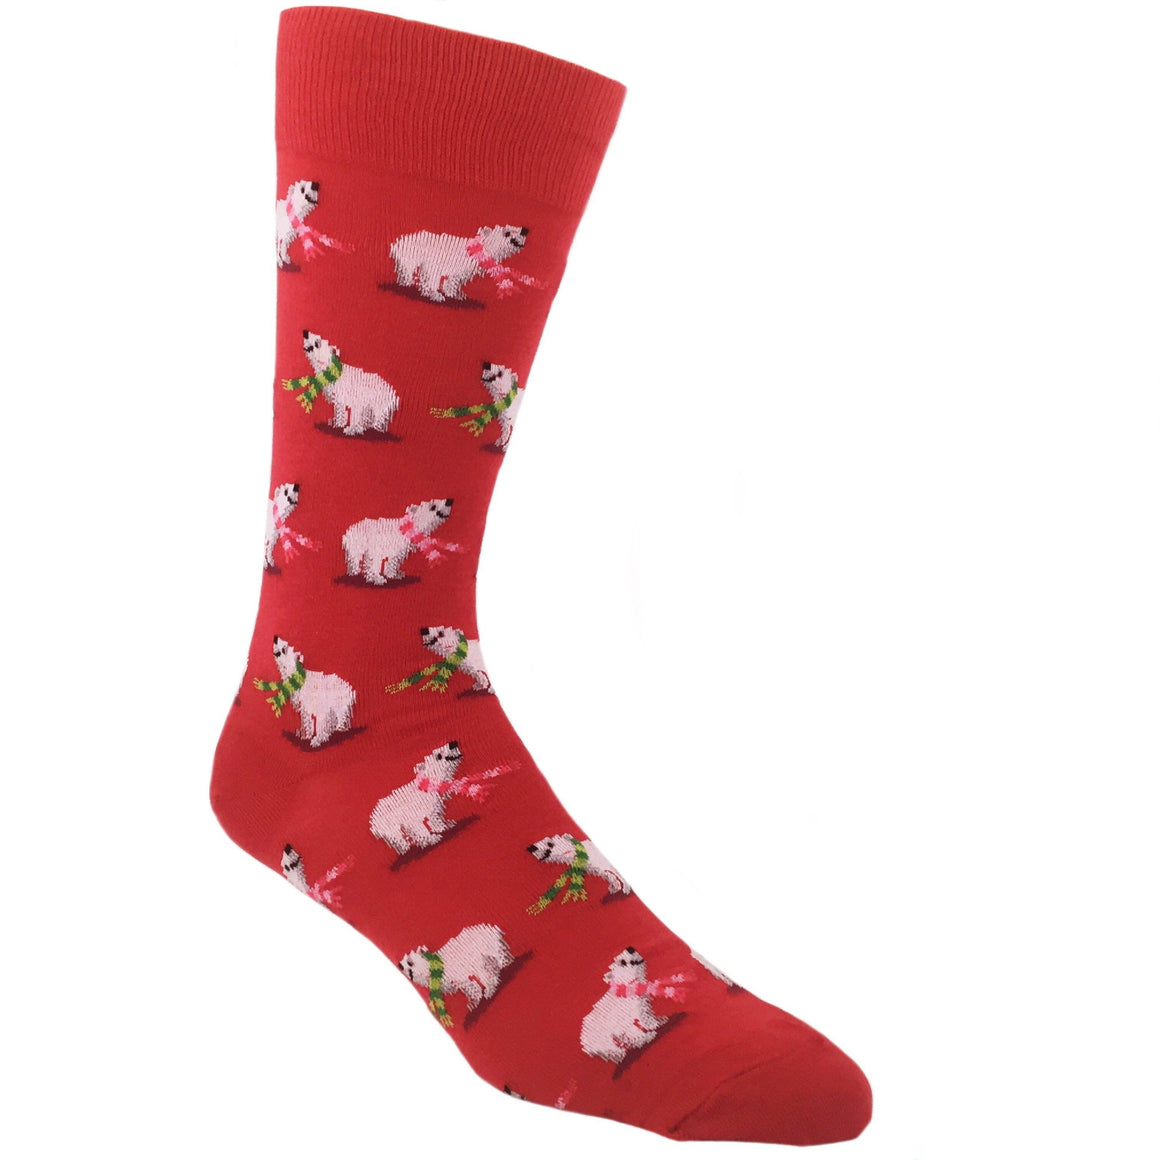 Socks - Polar Bears Christmas Socks - Red